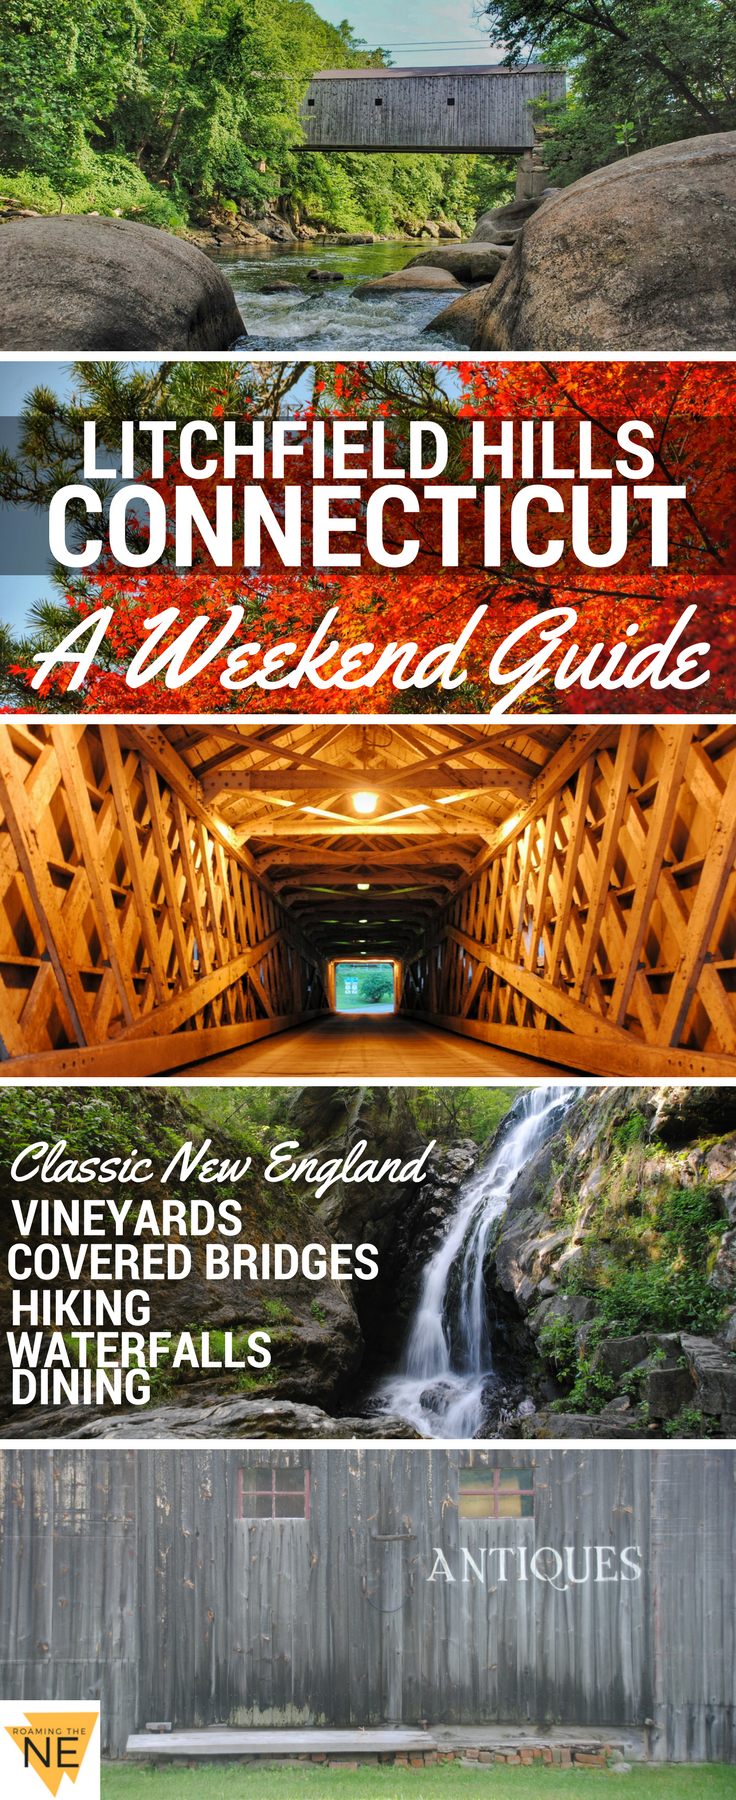 Weekend Guide Litchfield Hills.png